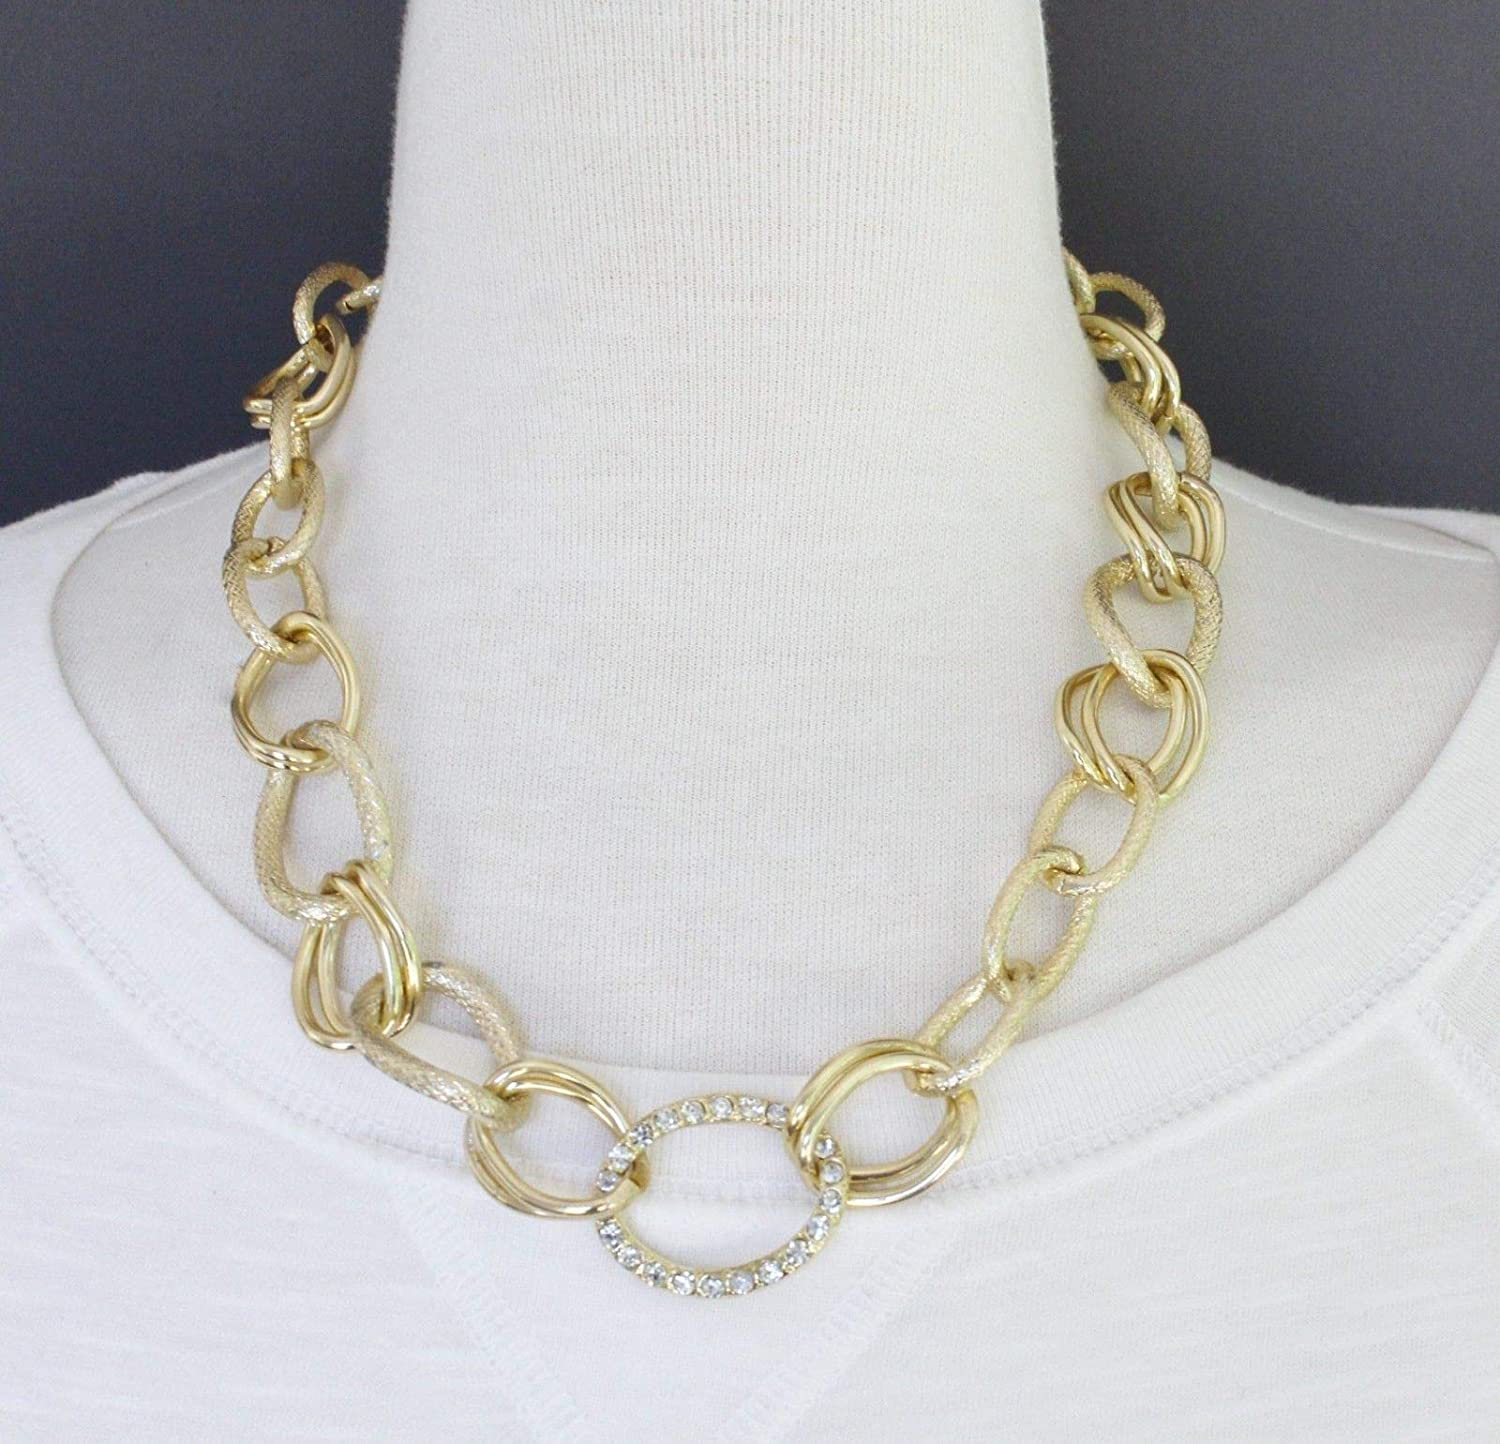 69dd717145ef Amazon.com  Gold tone chunky chain link collar bib statement necklace  earrings 18-20 long  Beauty